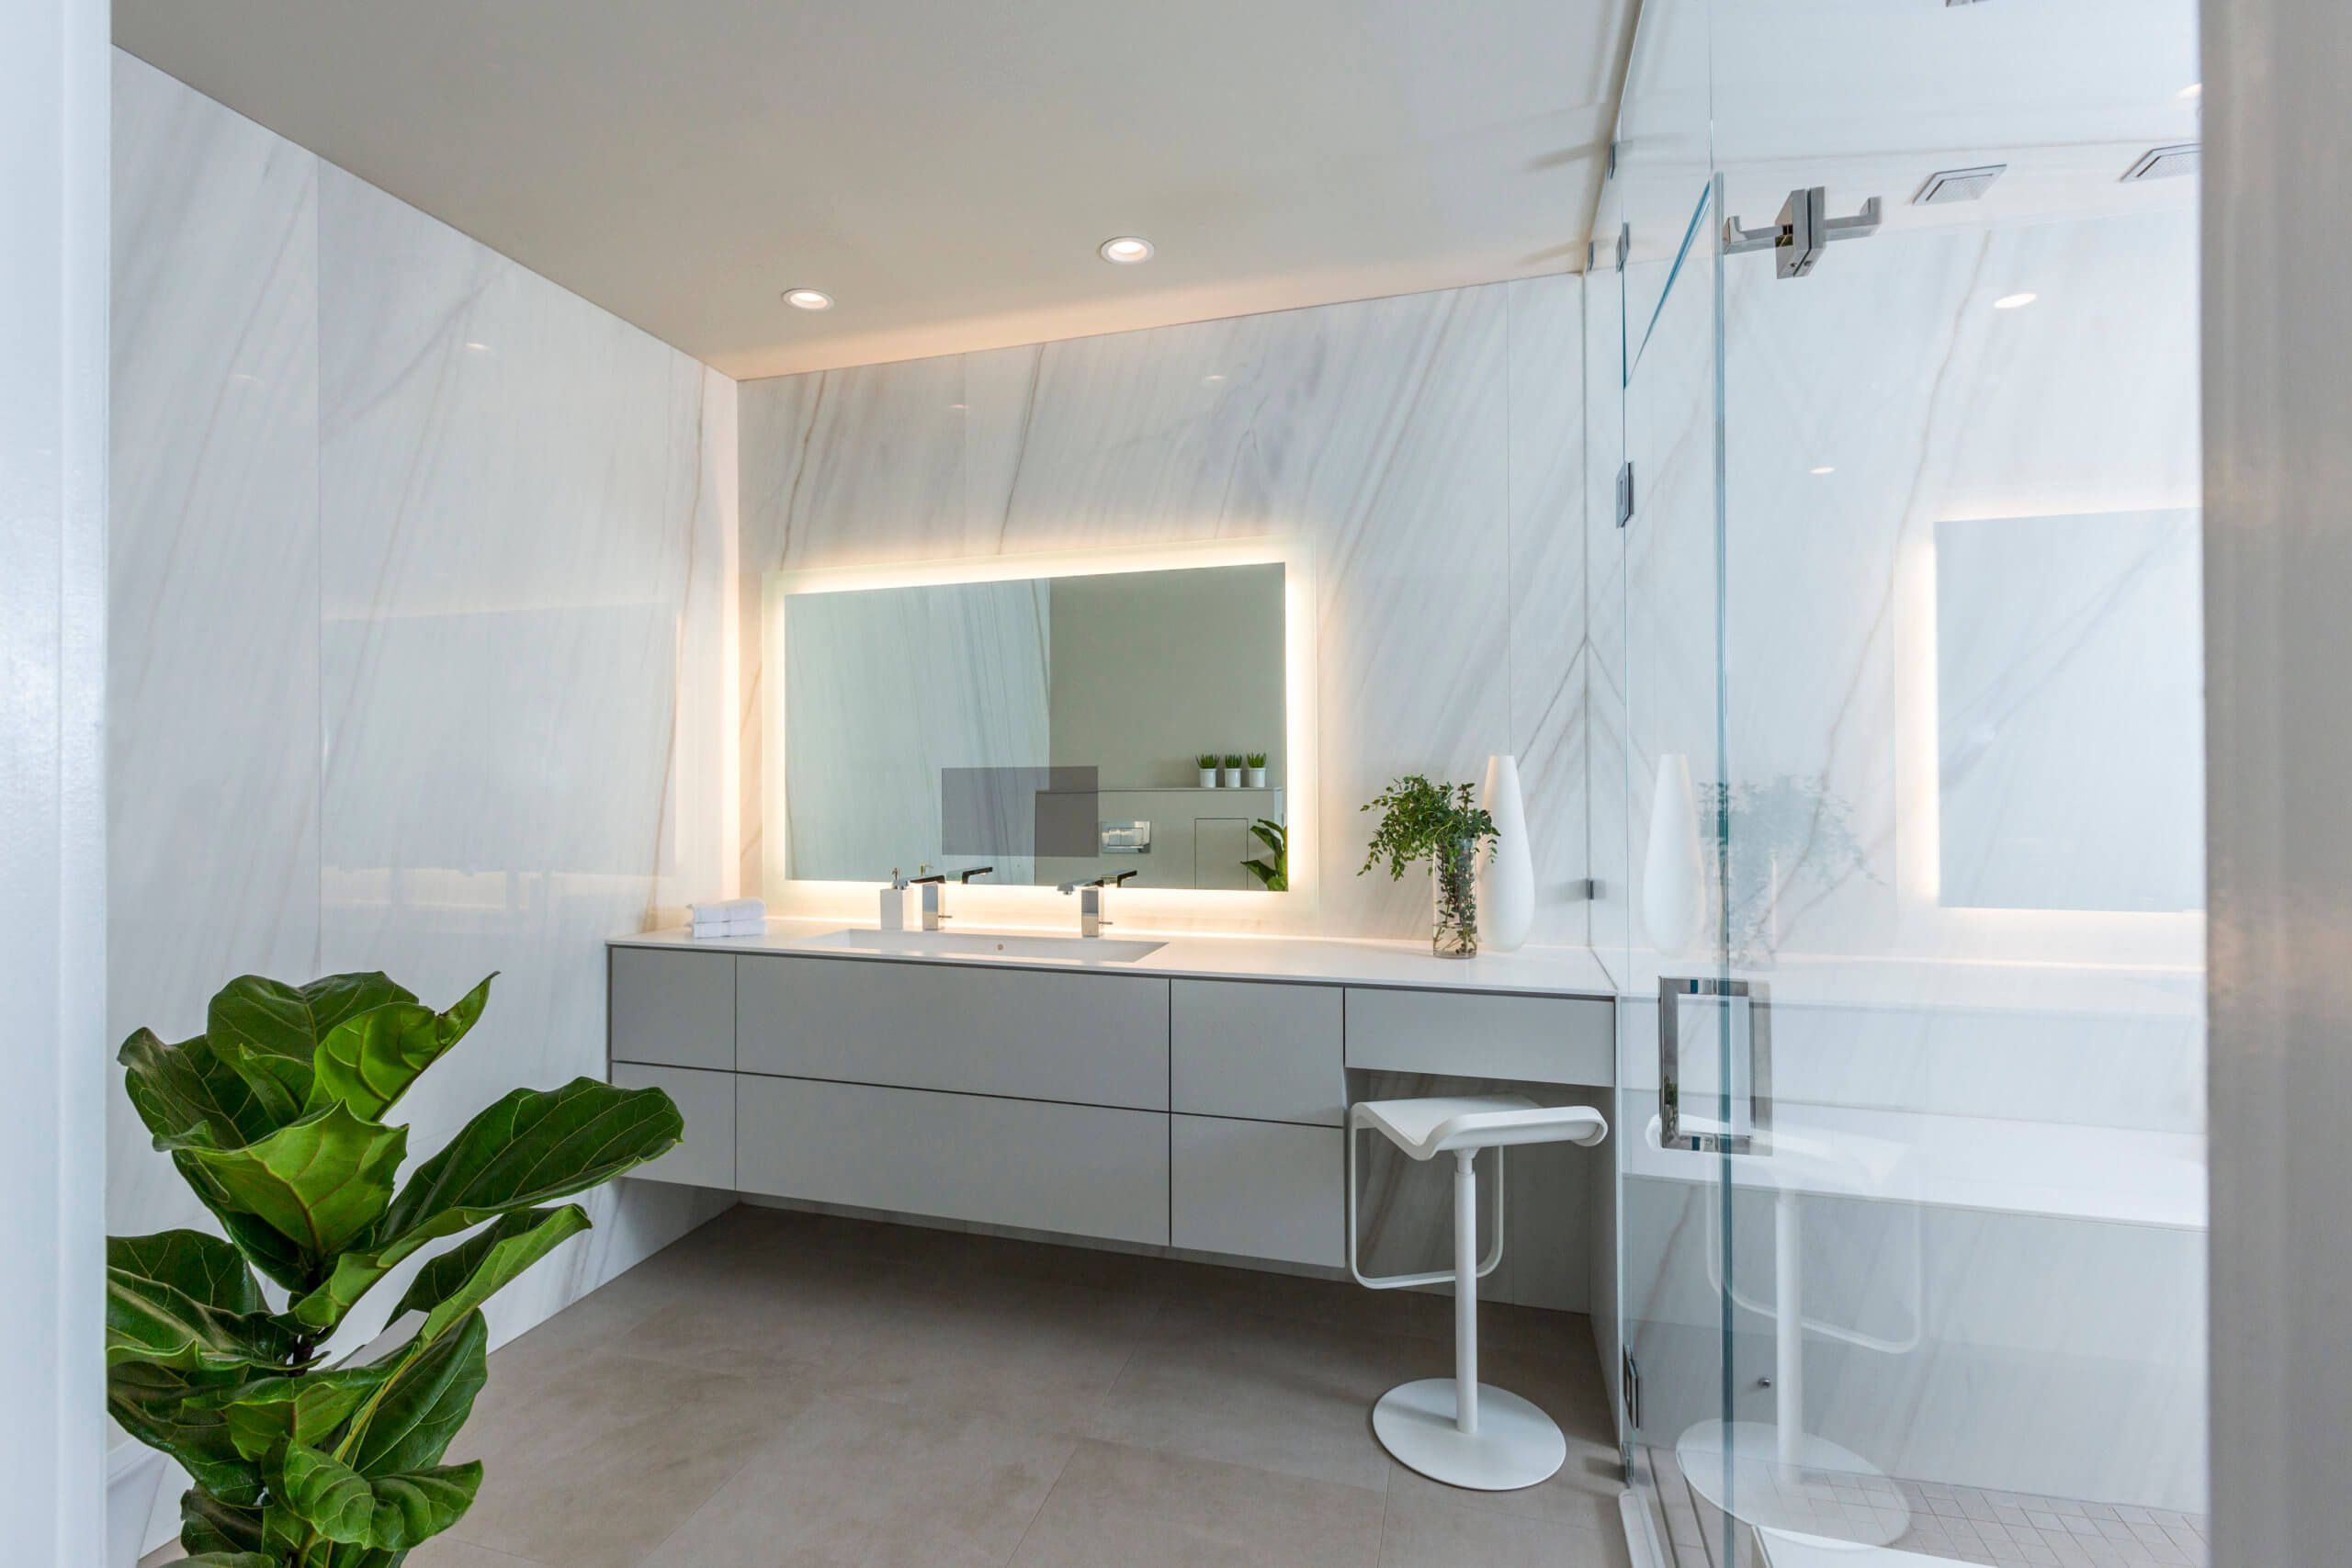 Modern white tile bathroom custom designed by Cincinnati Interior Designer, RM Interiors.